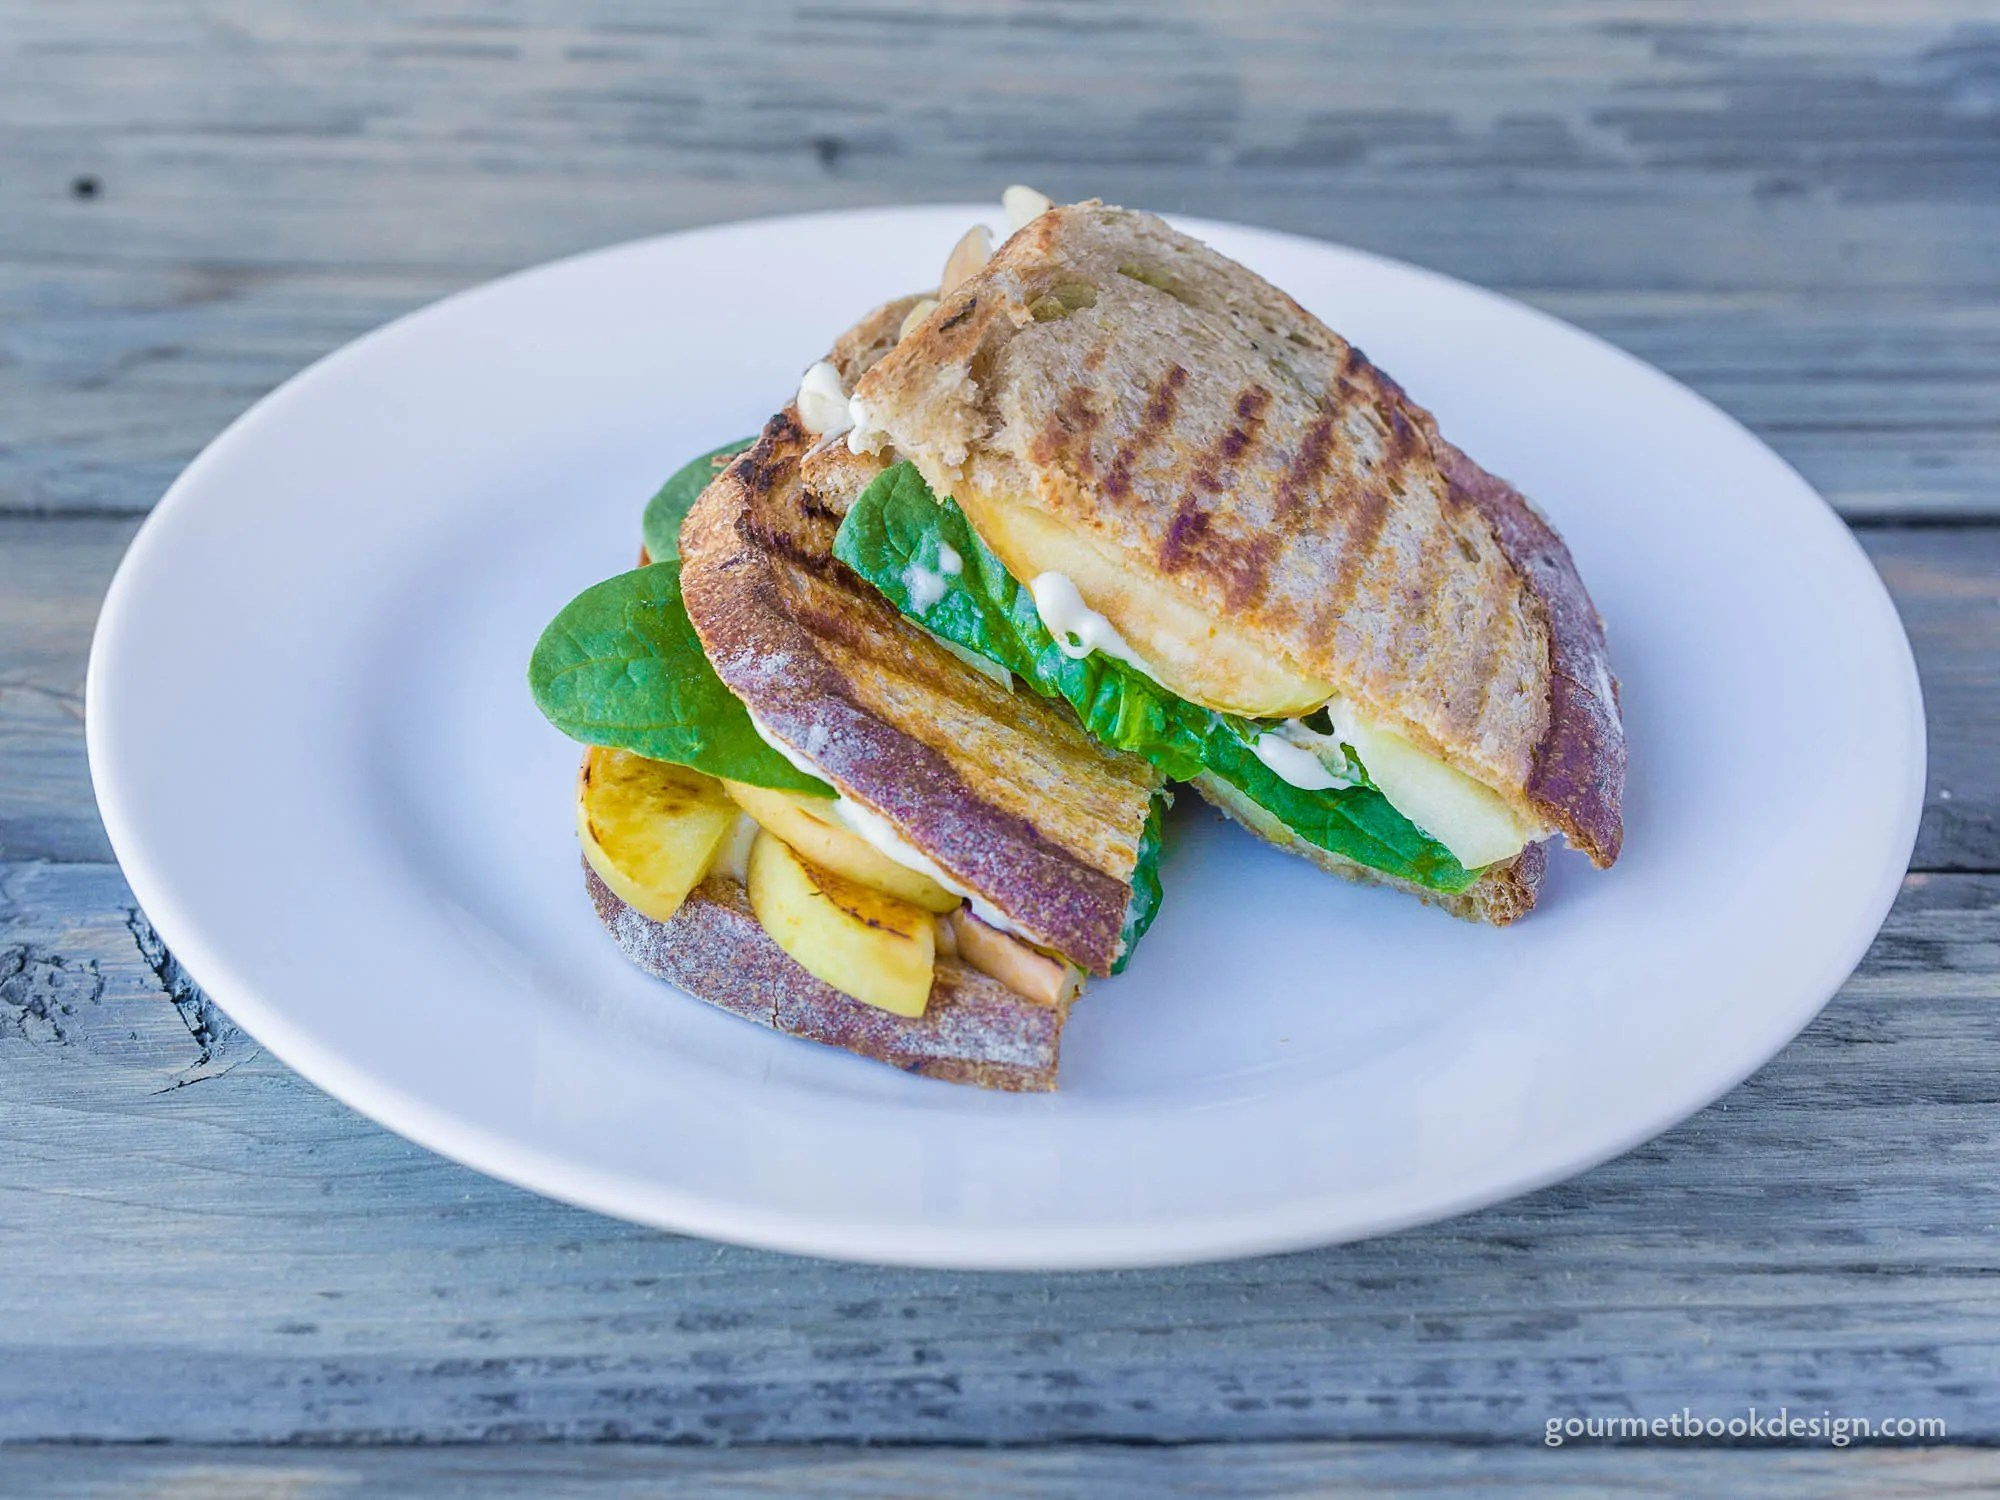 Grilled apple panini w/spinach & cashew cheese on green chile sourdough